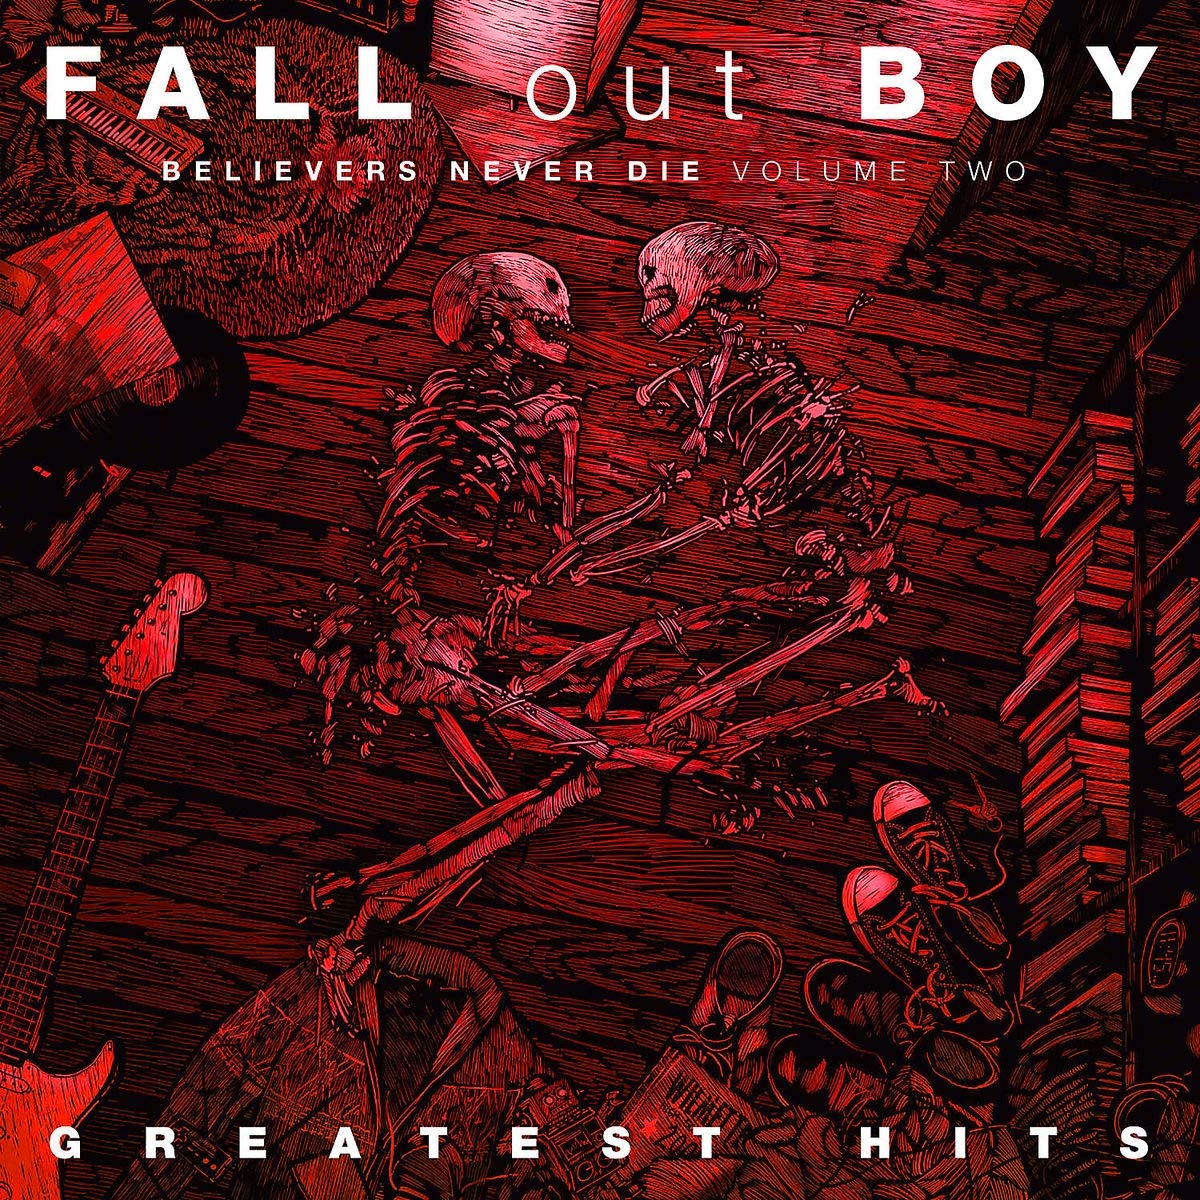 FALL OUT BOY - CD BELIEVERS NEVER DIE VOL.2